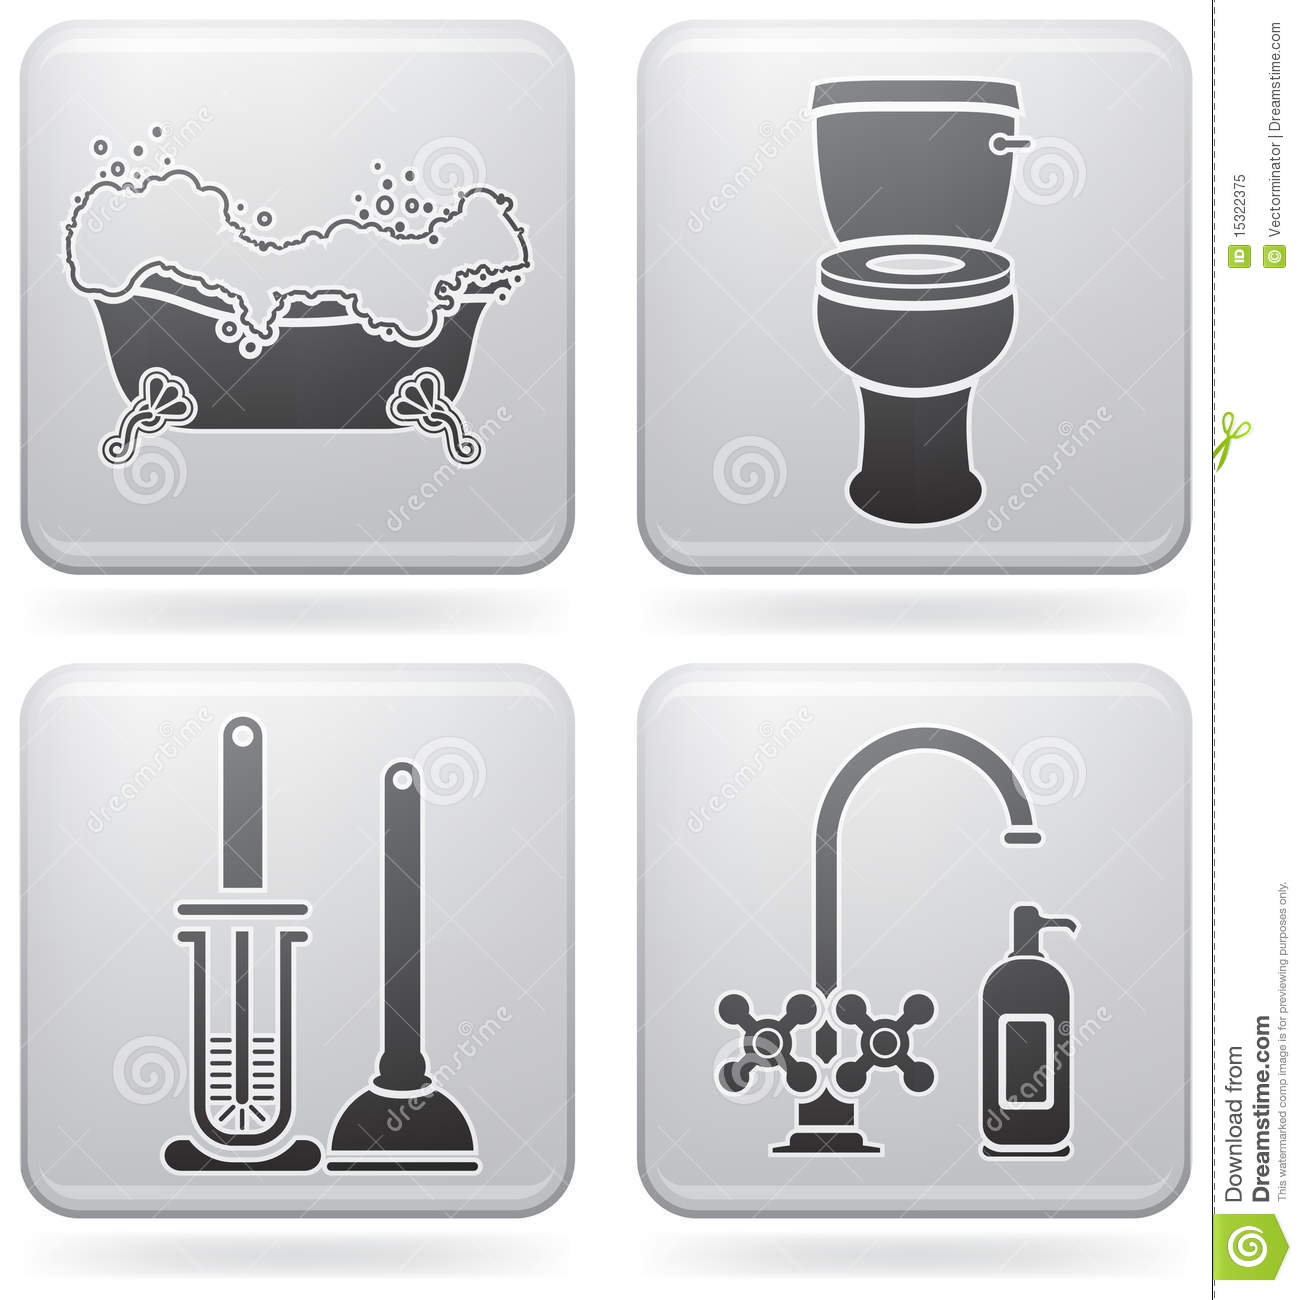 Bath utensils royalty free stock photo image 15322375 for Bathroom utensils